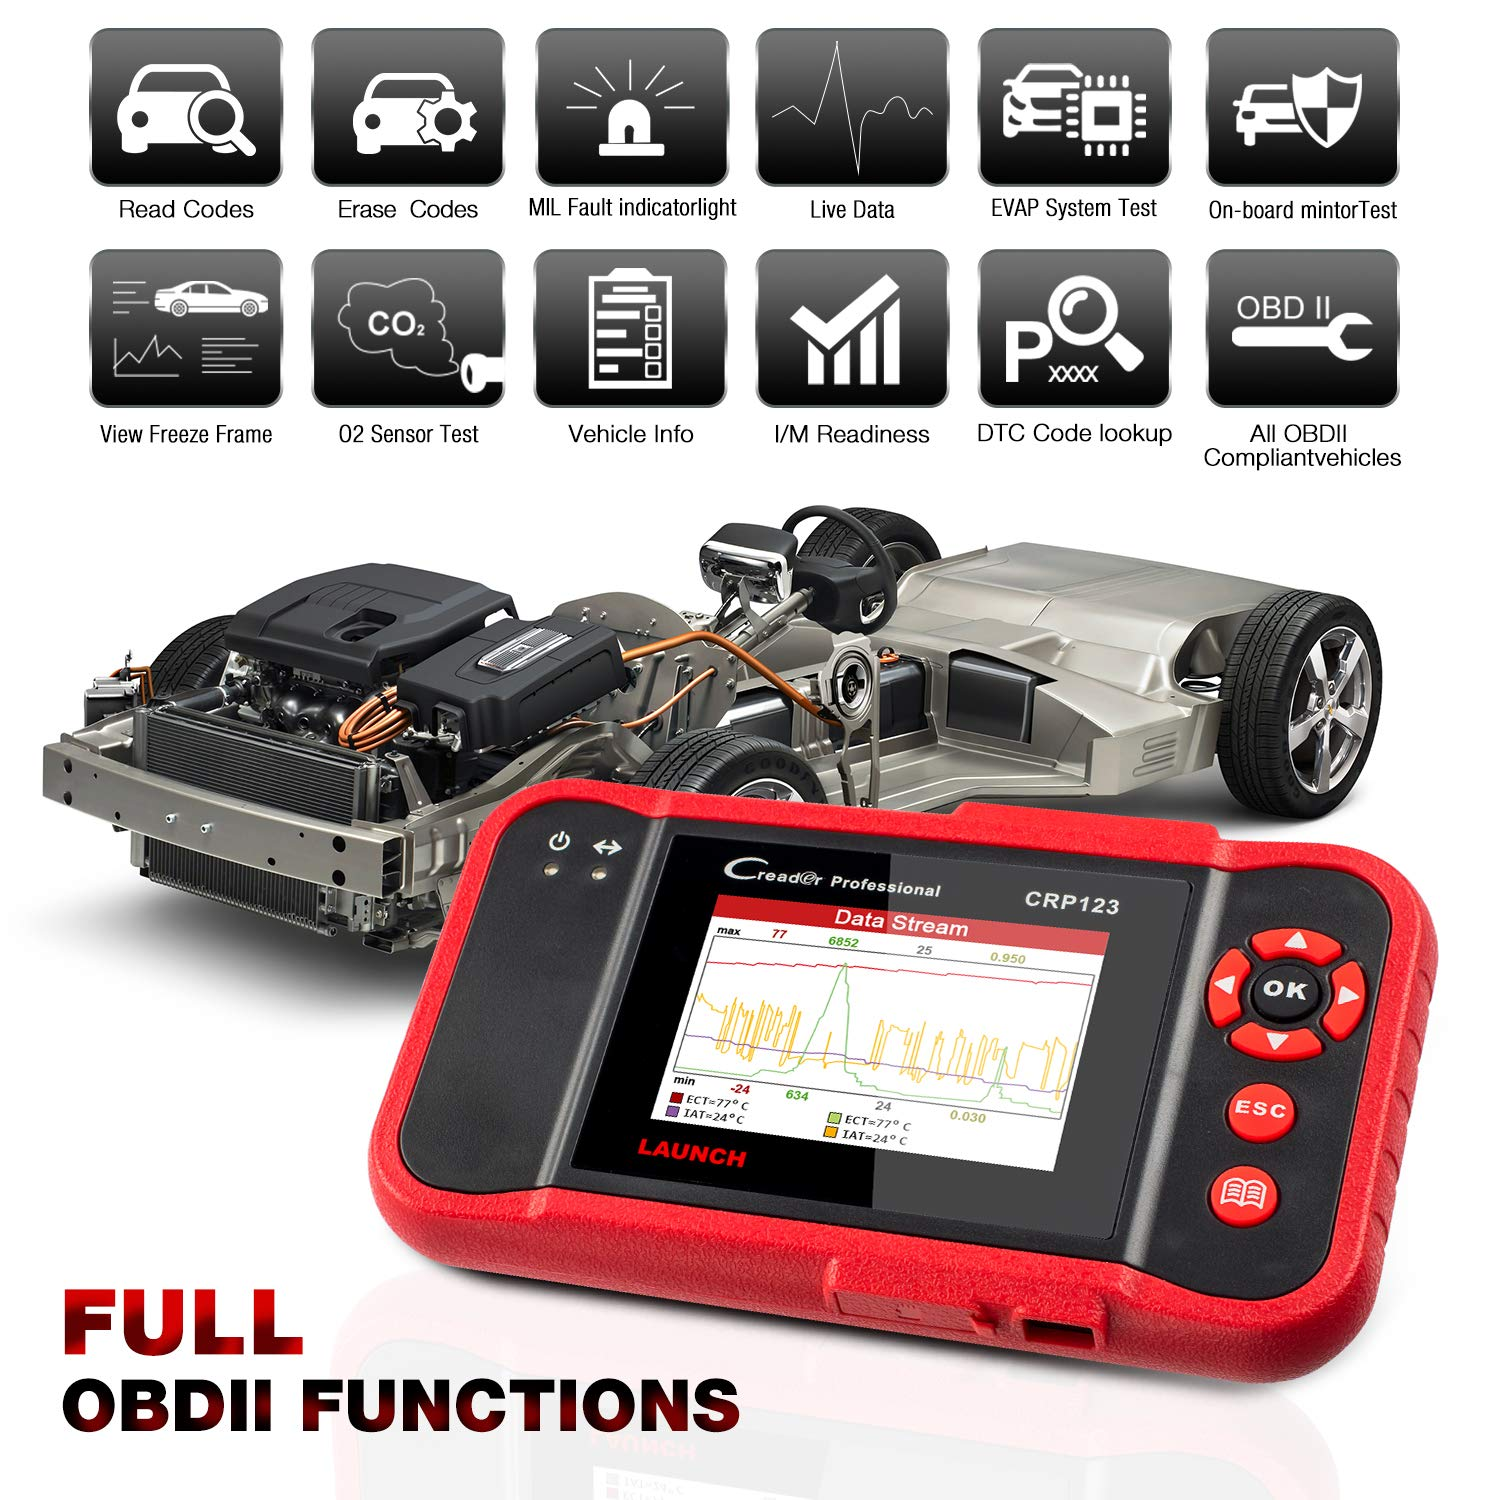 LAUNCH X431 Creader CRP123 Automotive Diagnostic Scan Tool OBD2 Auto Code Reader Support ENG/TCM/ABS/SRS System Code Reader with EL-50448 TPMS Activation Relearn Tool by LAUNCH (Image #3)